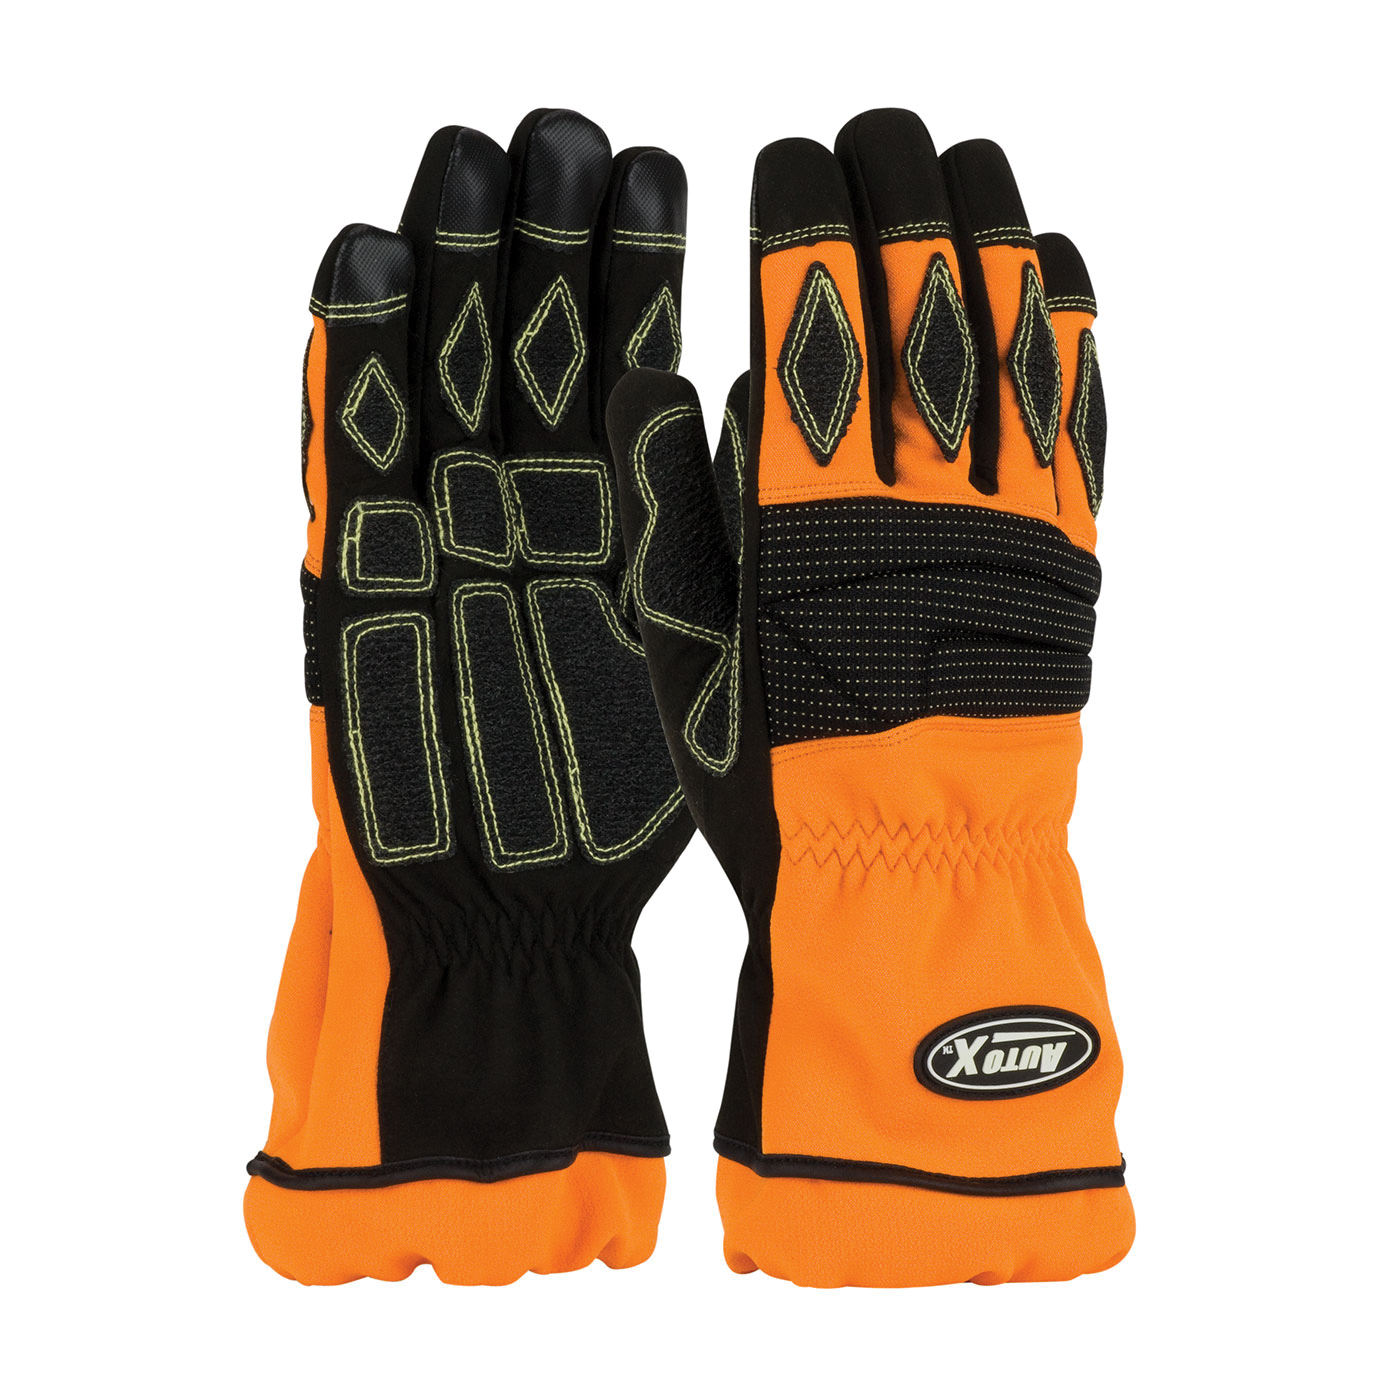 PIP® AutoX™ 911-AX9/L Extrication Gloves, L, Kevlar®, Polyurethane, Black/Orange, Unlined Lining, Open Cuff, 10.8 in L, Resists: Abrasion, Heat, Puncture and Melt